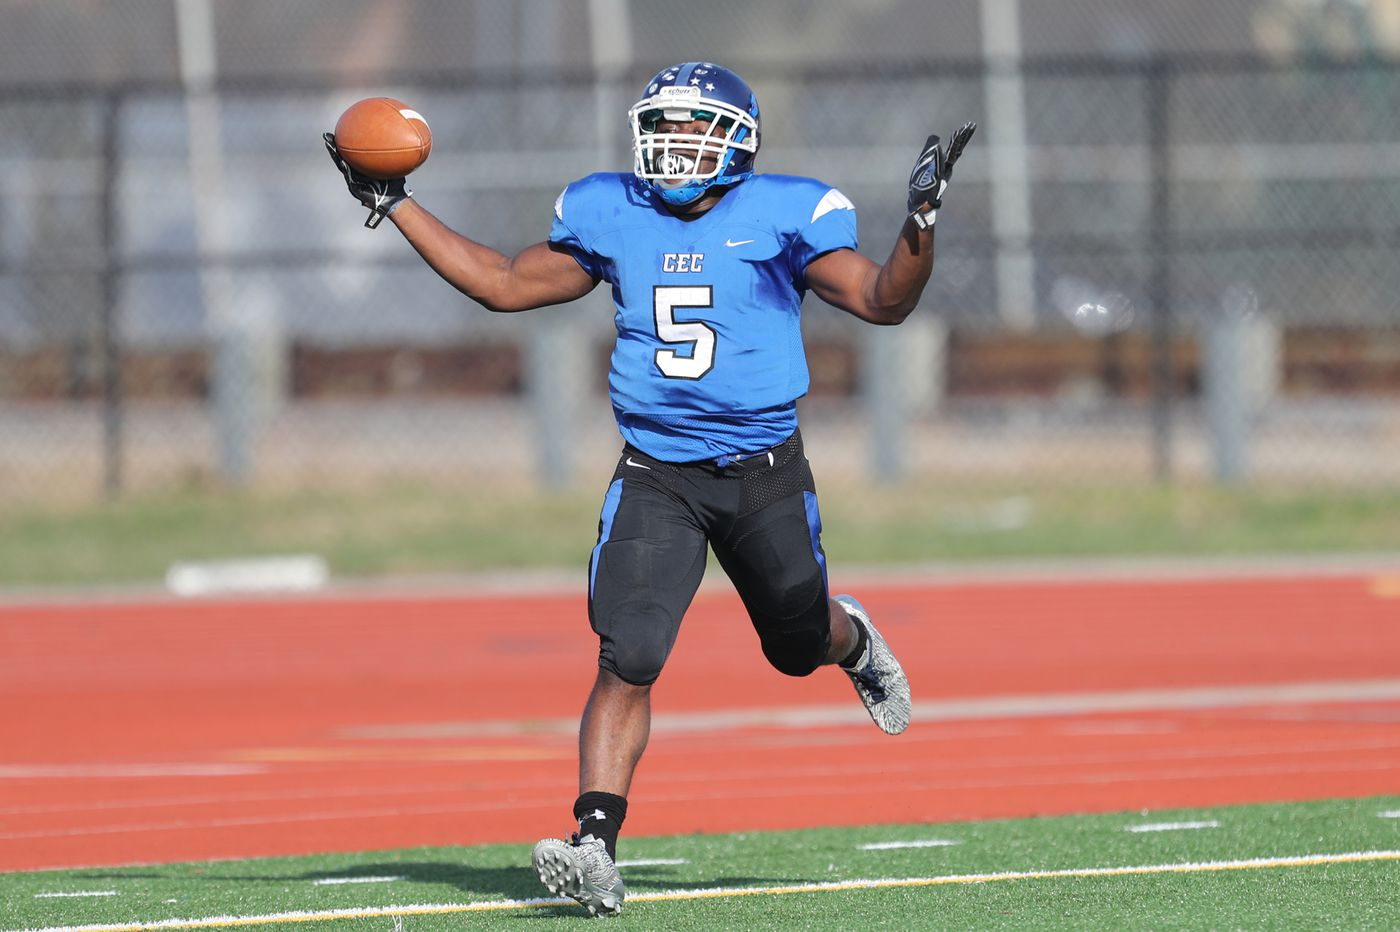 Highlight reel: Conwell-Egan and West Catholic in Catholic League Blue Division showdown